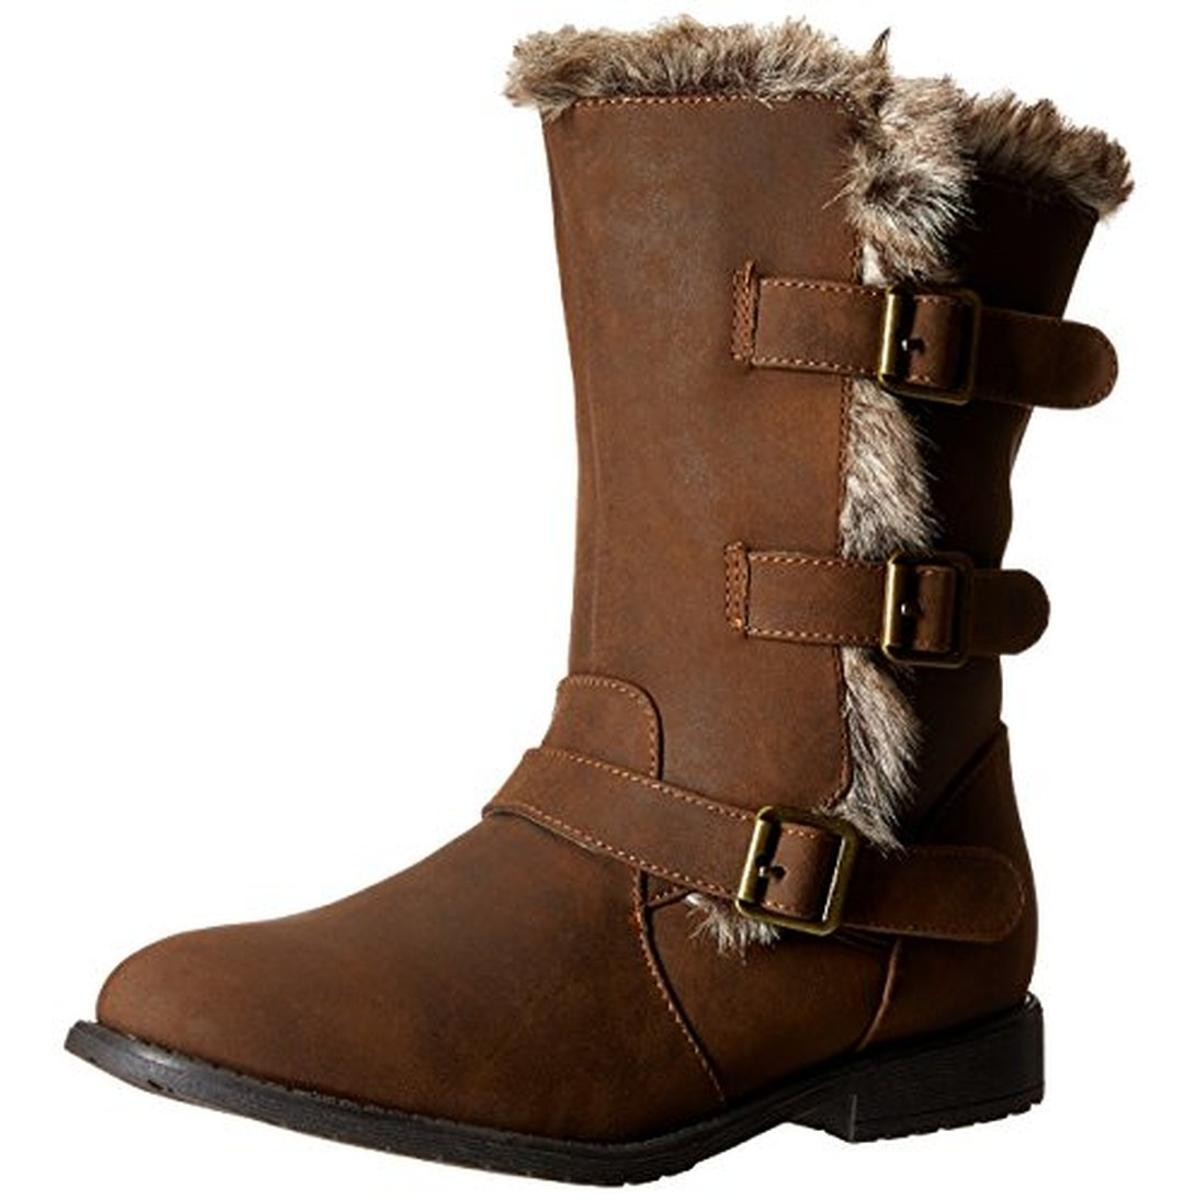 VEGAN FRIENDLY: Faux leather throughout YOU These boots are a must Shoe'N Tale Women Over The Knee High Stretchy Leather Thigh high Snow Boots. by Shoe'N Tale. $ - $ $ 25 $ 46 69 Prime. FREE Shipping on eligible orders. Some sizes/colors are .